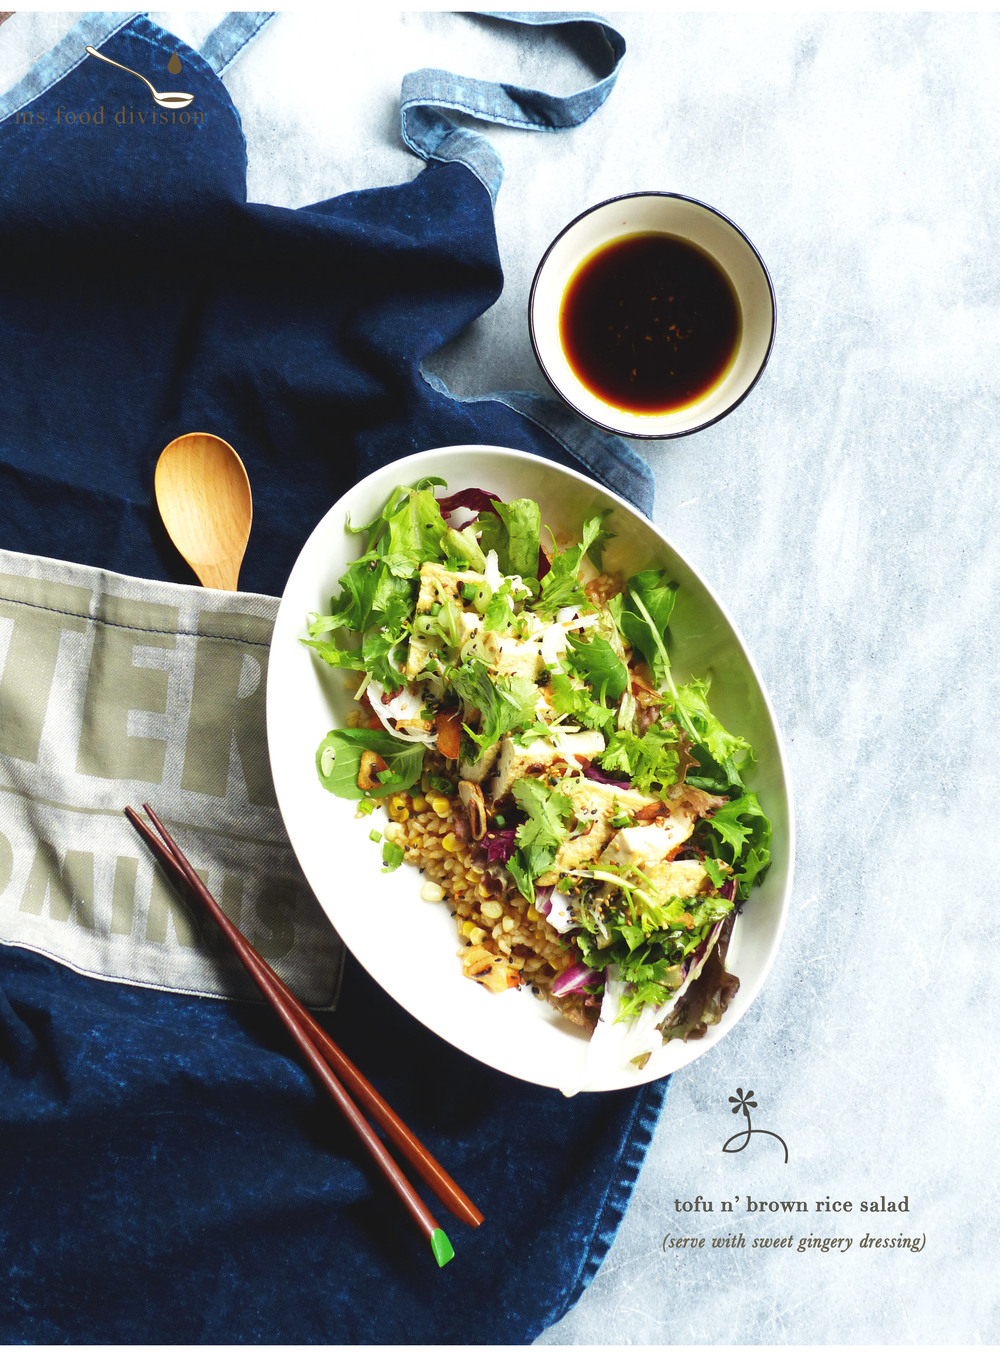 tofu and brown rice salad - a macho dish for the boys..